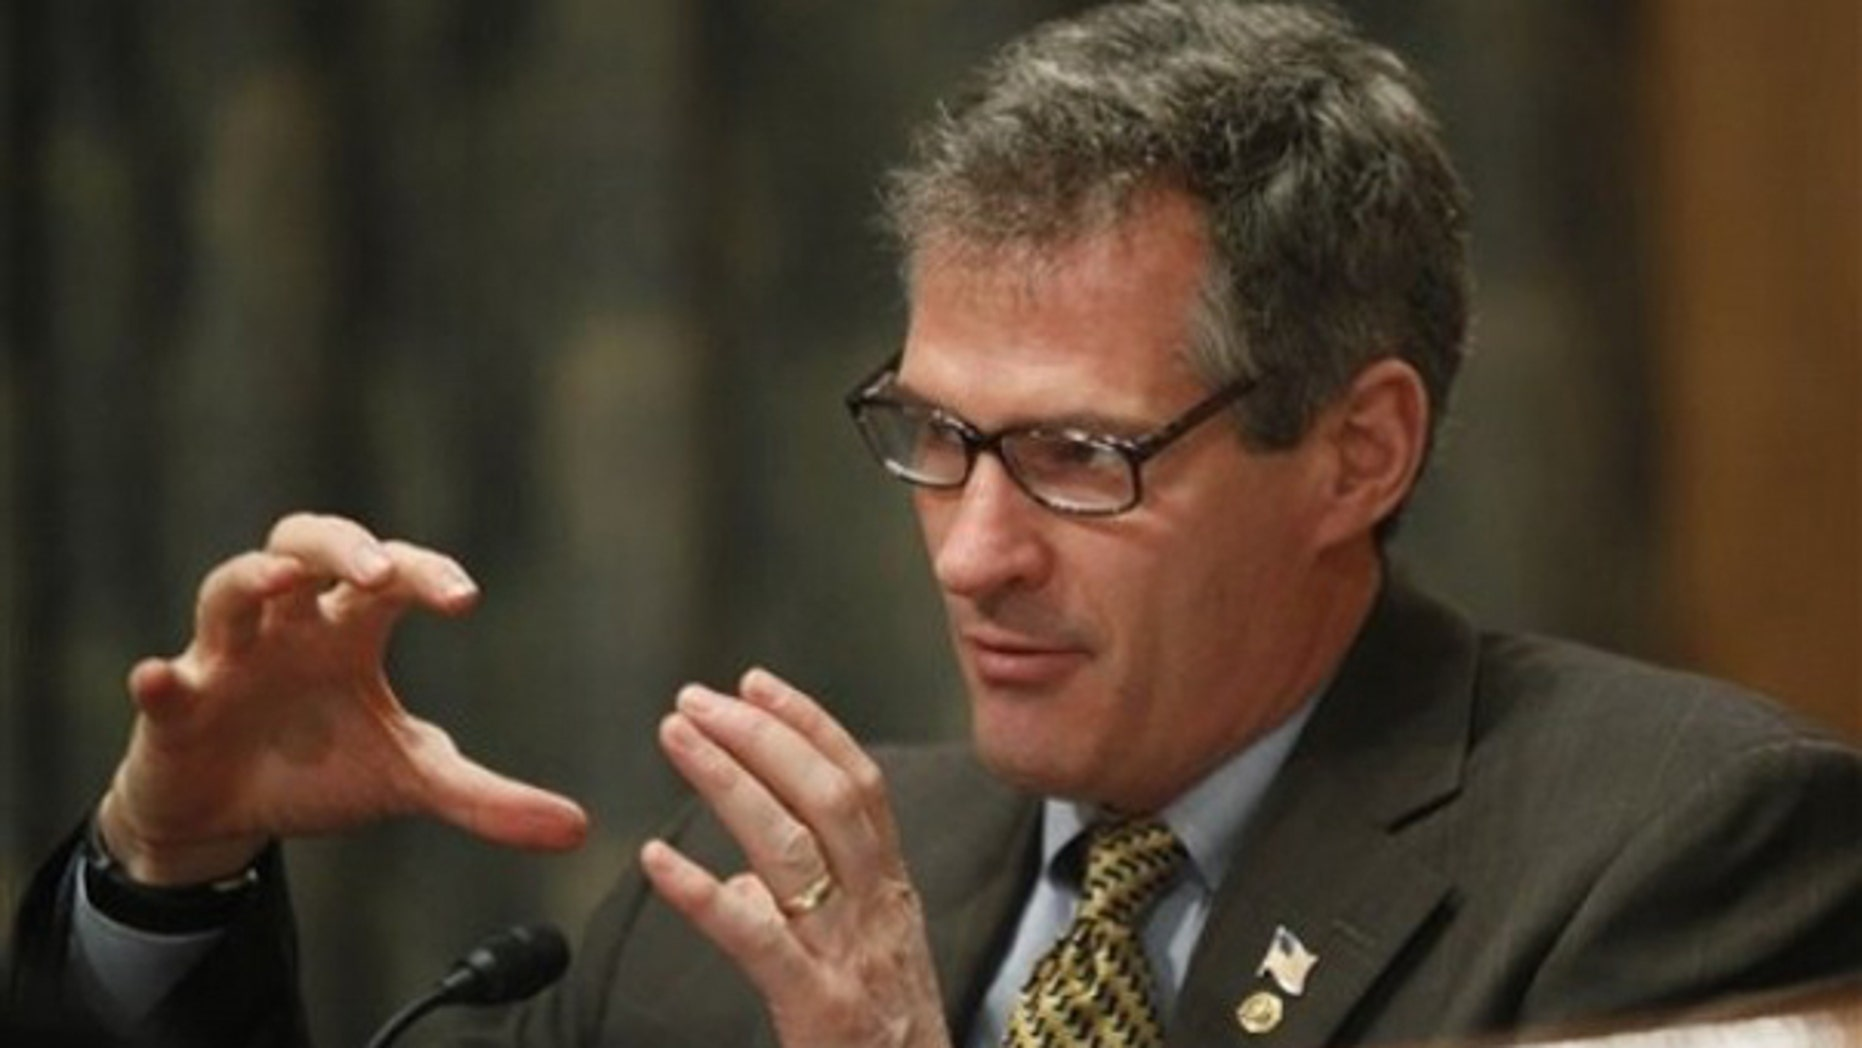 Sen. Scott Brown questions witnesses during a hearing on intelligence reform March 10 on Capitol Hill. (AP Photo)